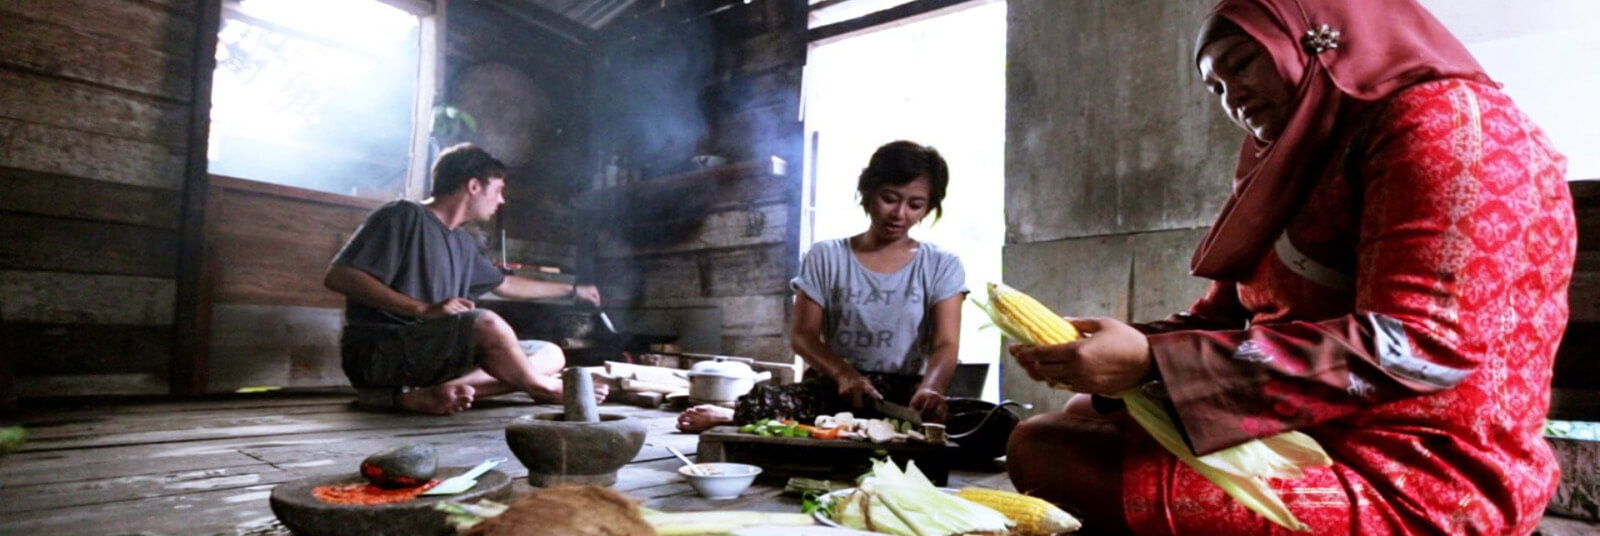 Cooking in Siak, Sumatra, Indonesia